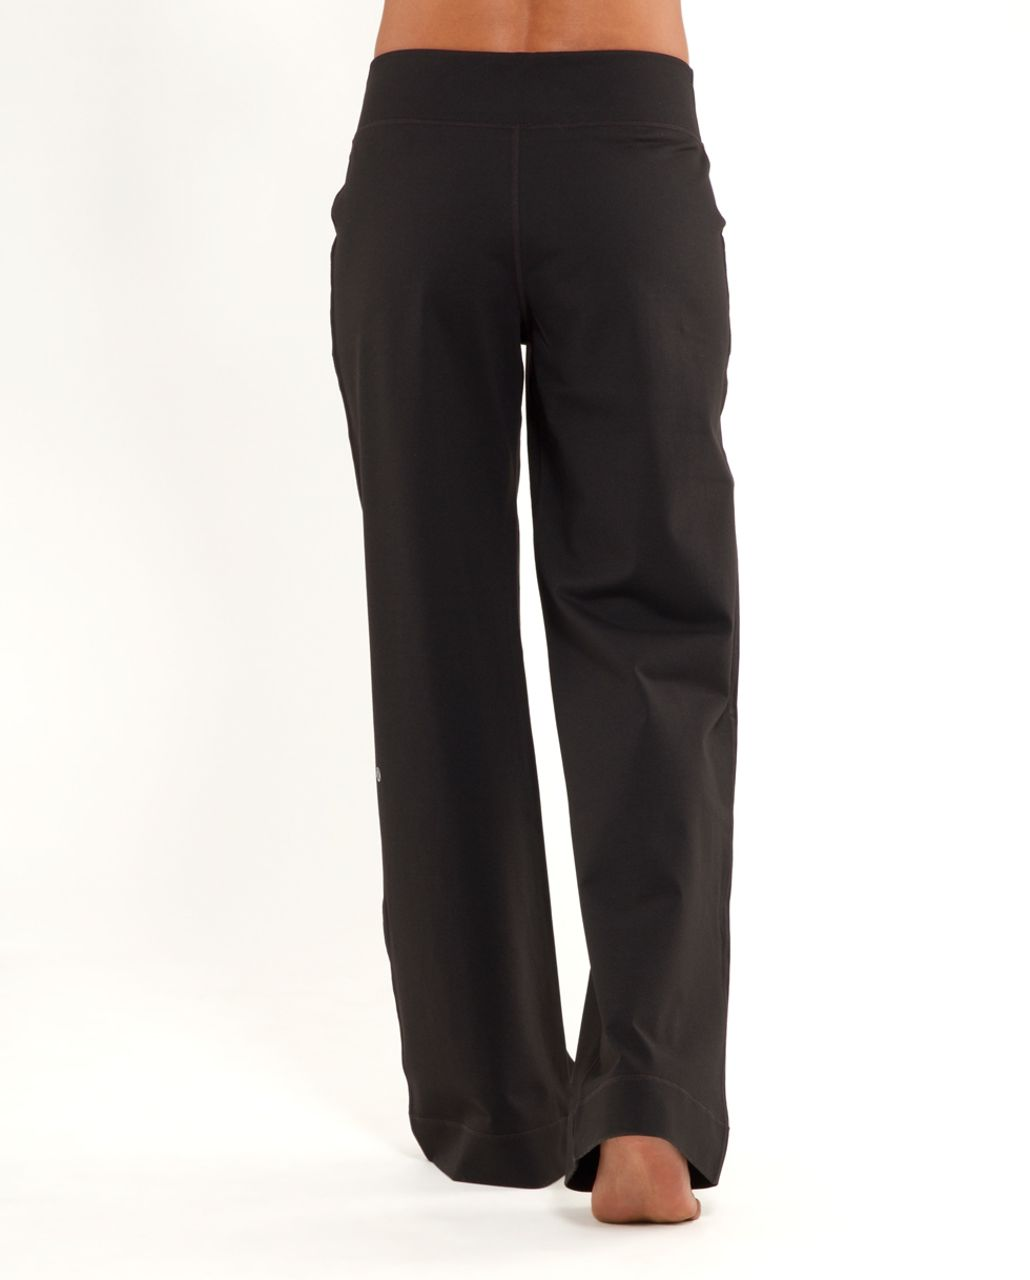 Lululemon Still Pant *Brushed (Tall) - Black